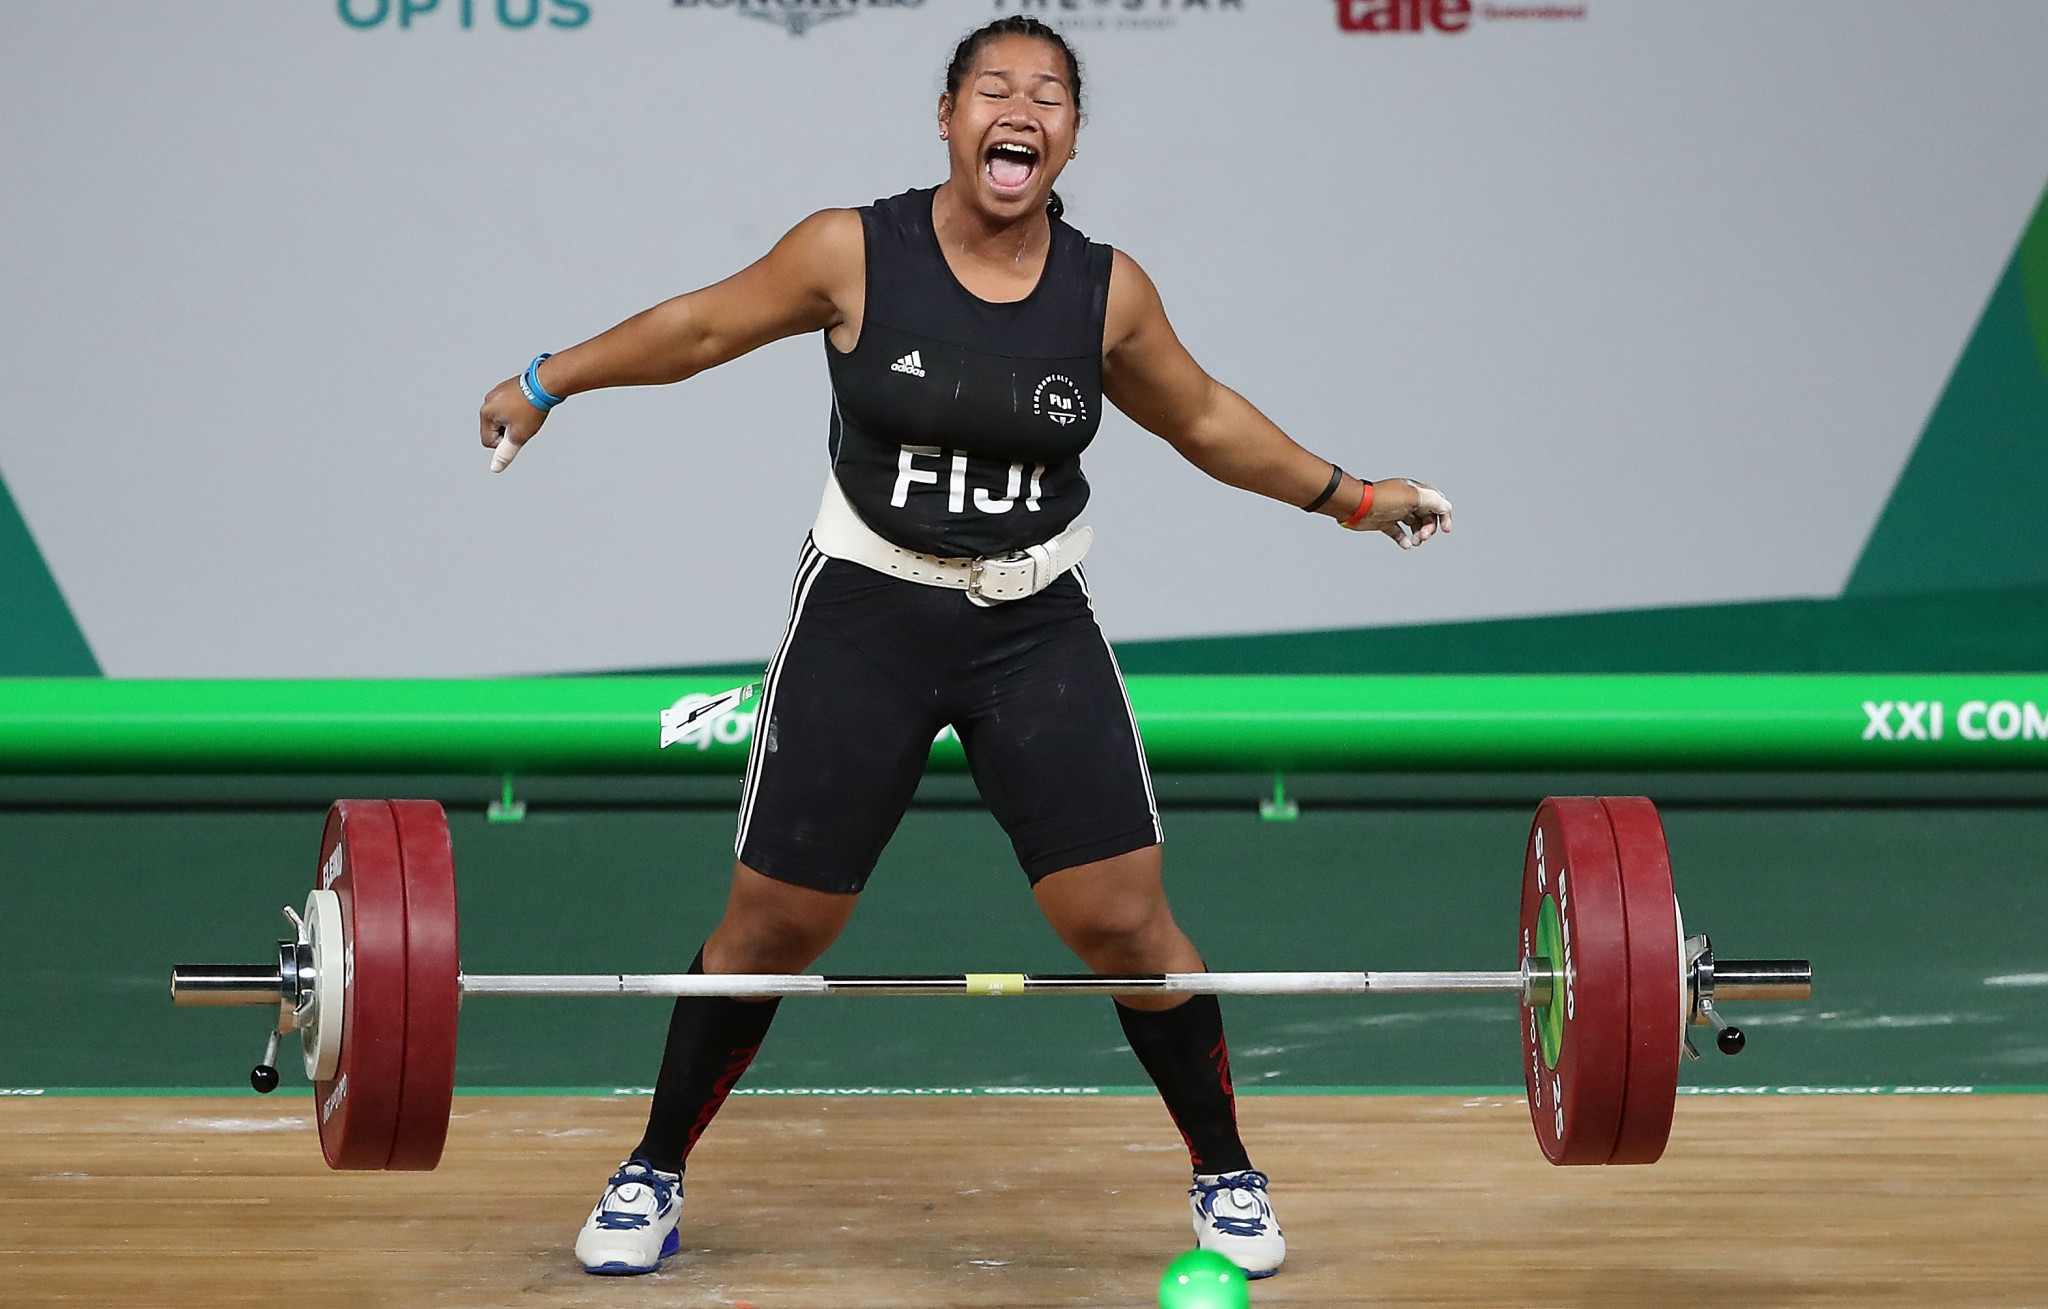 Eileen Cikamatana would have been a gold medal hope for Fiji ©Getty Images